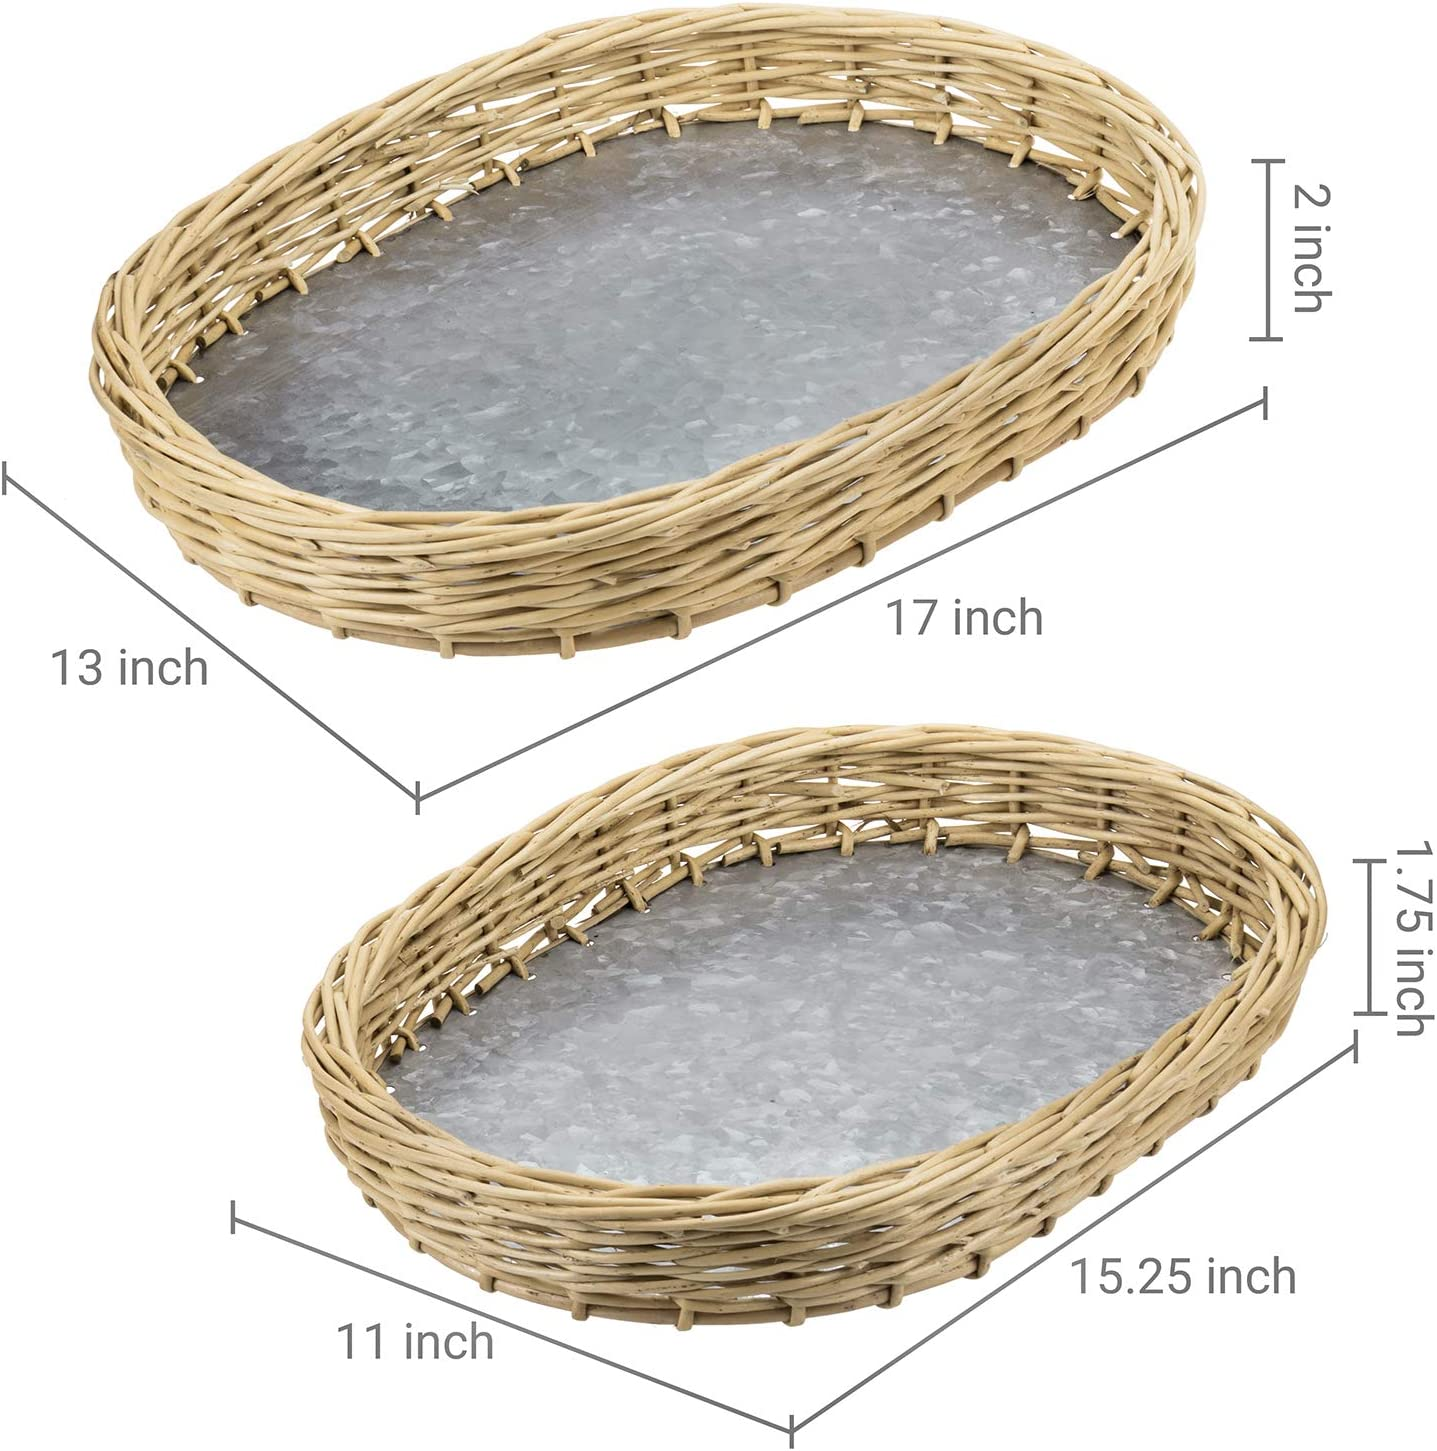 MyGift Oval-Shaped Rustic Woven Rattan Nesting Serving Trays with Galvanized Silver Metal Bottoms Set of 2